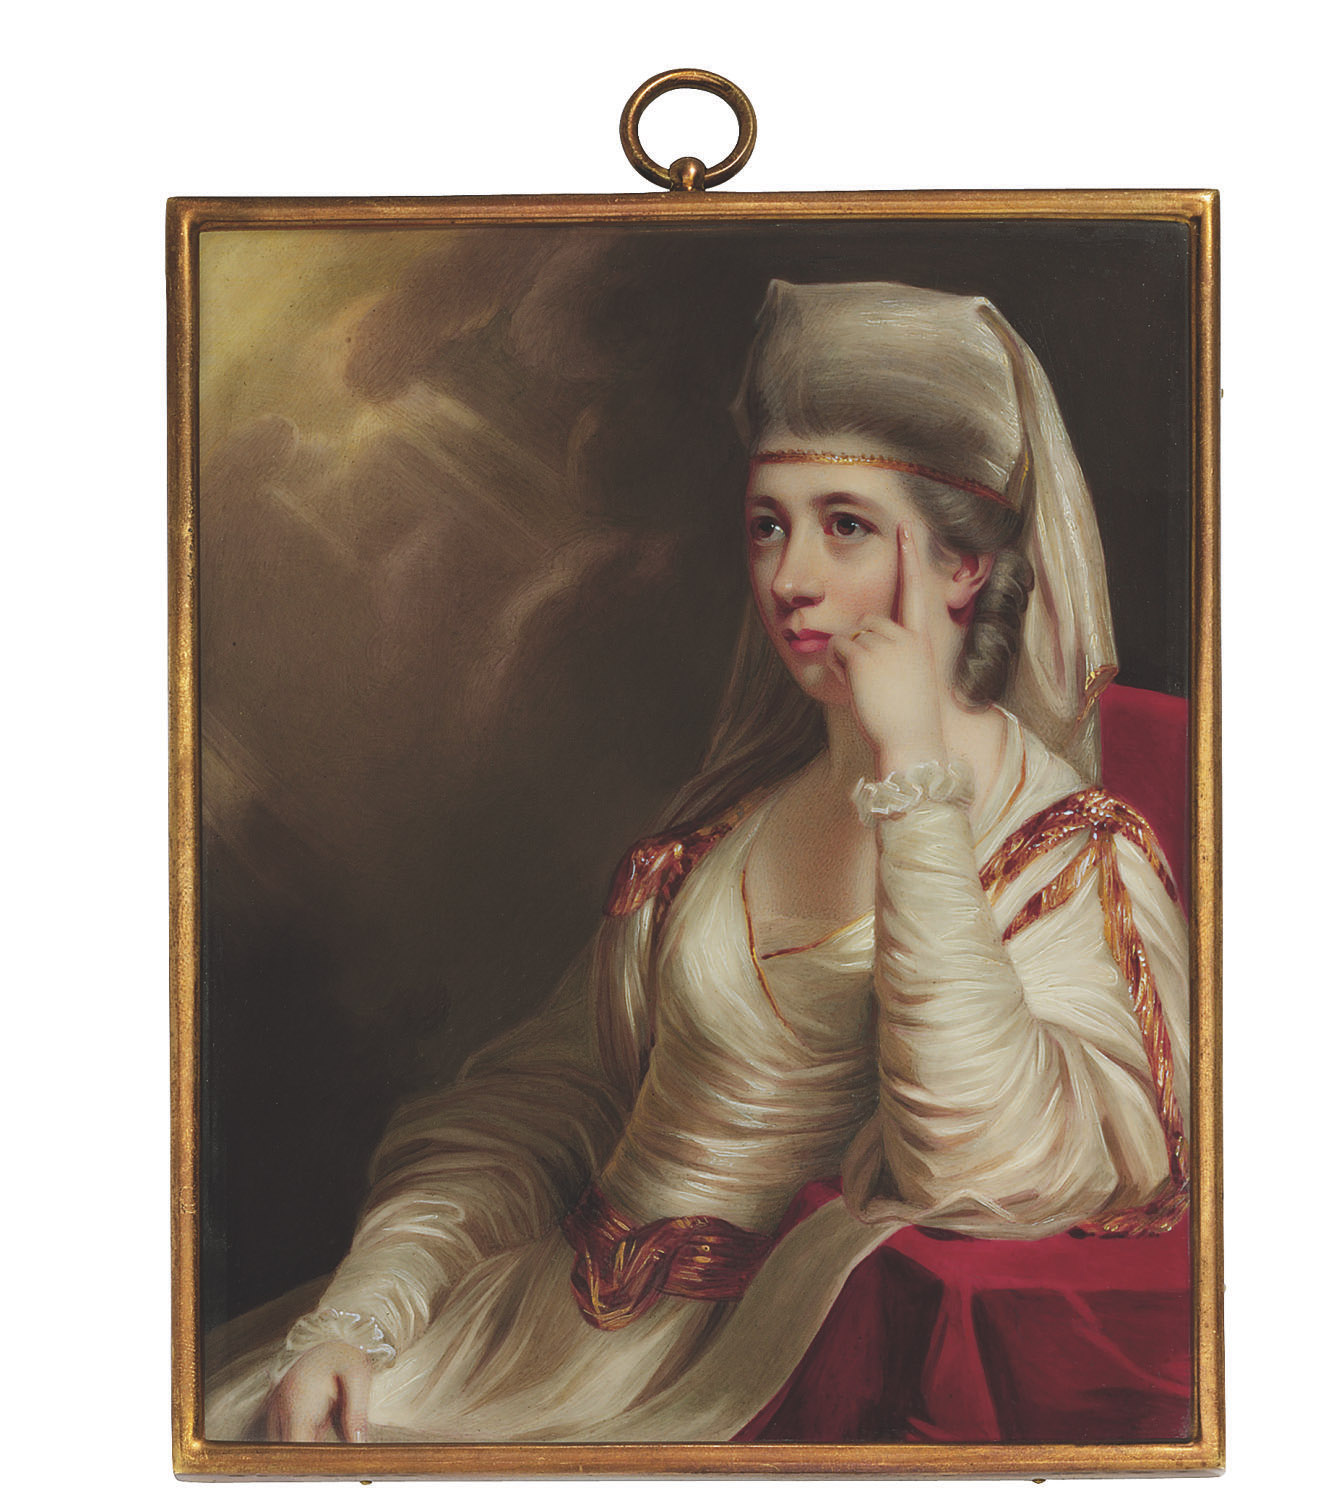 Margaret Georgiana, Countess Spencer, née Poyntz (1737-1814), seated on a red draped chair, one hand raised to her cheek, in a gold-trimmed white dress and gauze head scarf over her powdered hair dressed in ringlets, stormy sky background